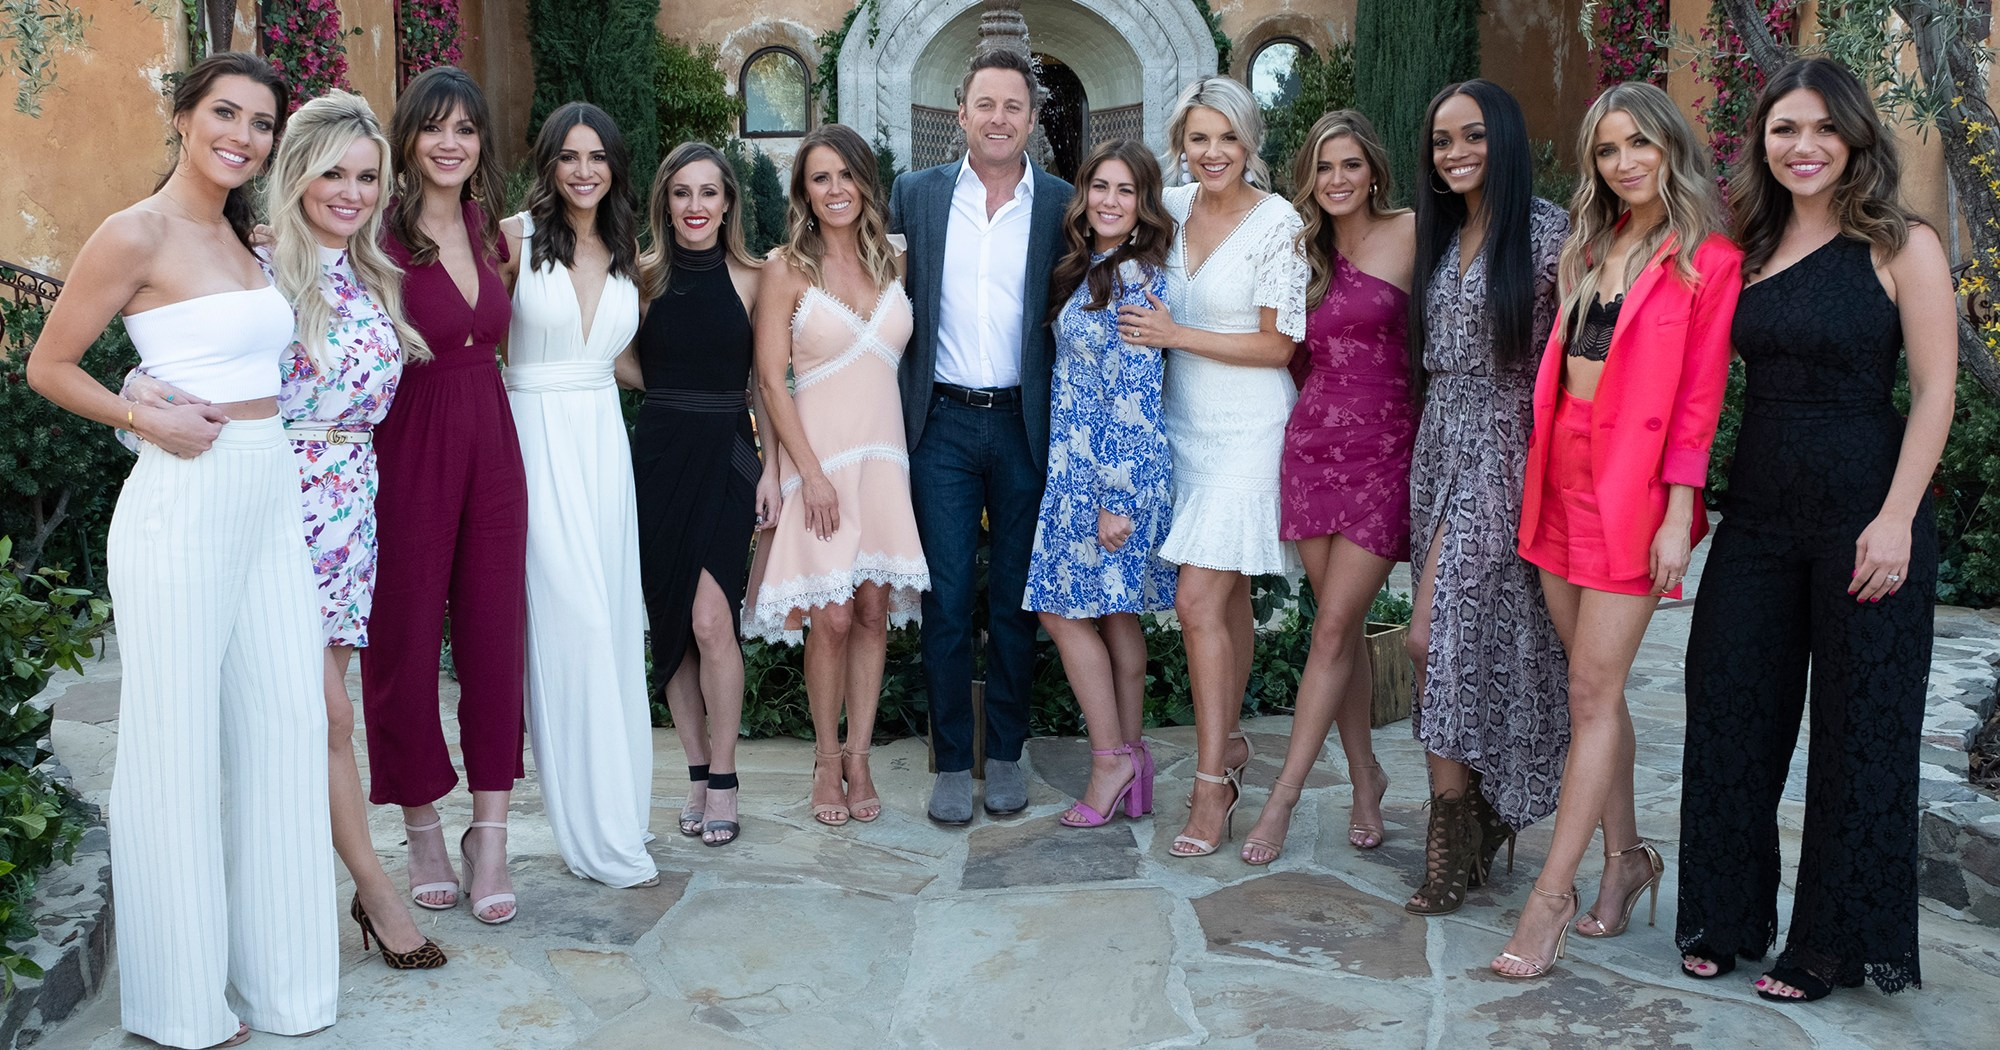 Inside 'The Bachelorette' Reunion Special With Andi Dorfman, Desiree Hartstock and More